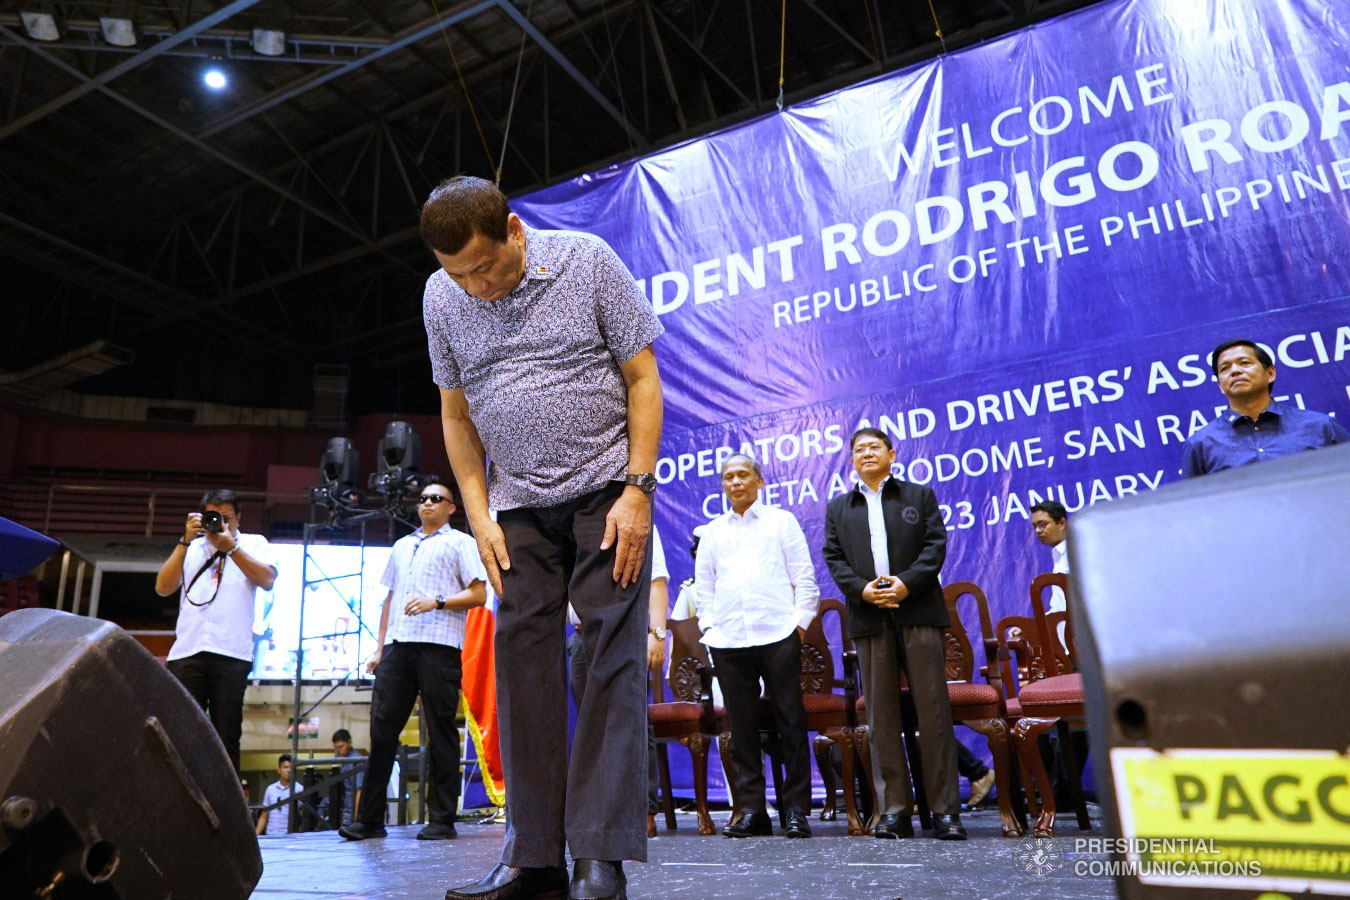 President Rodrigo Roa Duterte bows before the attendees of the Tricycle Operators and Drivers' Association (TODA) Summit at the Cuneta Astrodome in Pasay City on January 23, 2019. Also in the photo are Energy Secretary Alfonso Cusi, Interior and Local Government Secretary Eduardo Año, and Social and Welfare Development Secretary Rolando Bautista. KING RODRIGUEZ/PRESIDENTIAL PHOTO